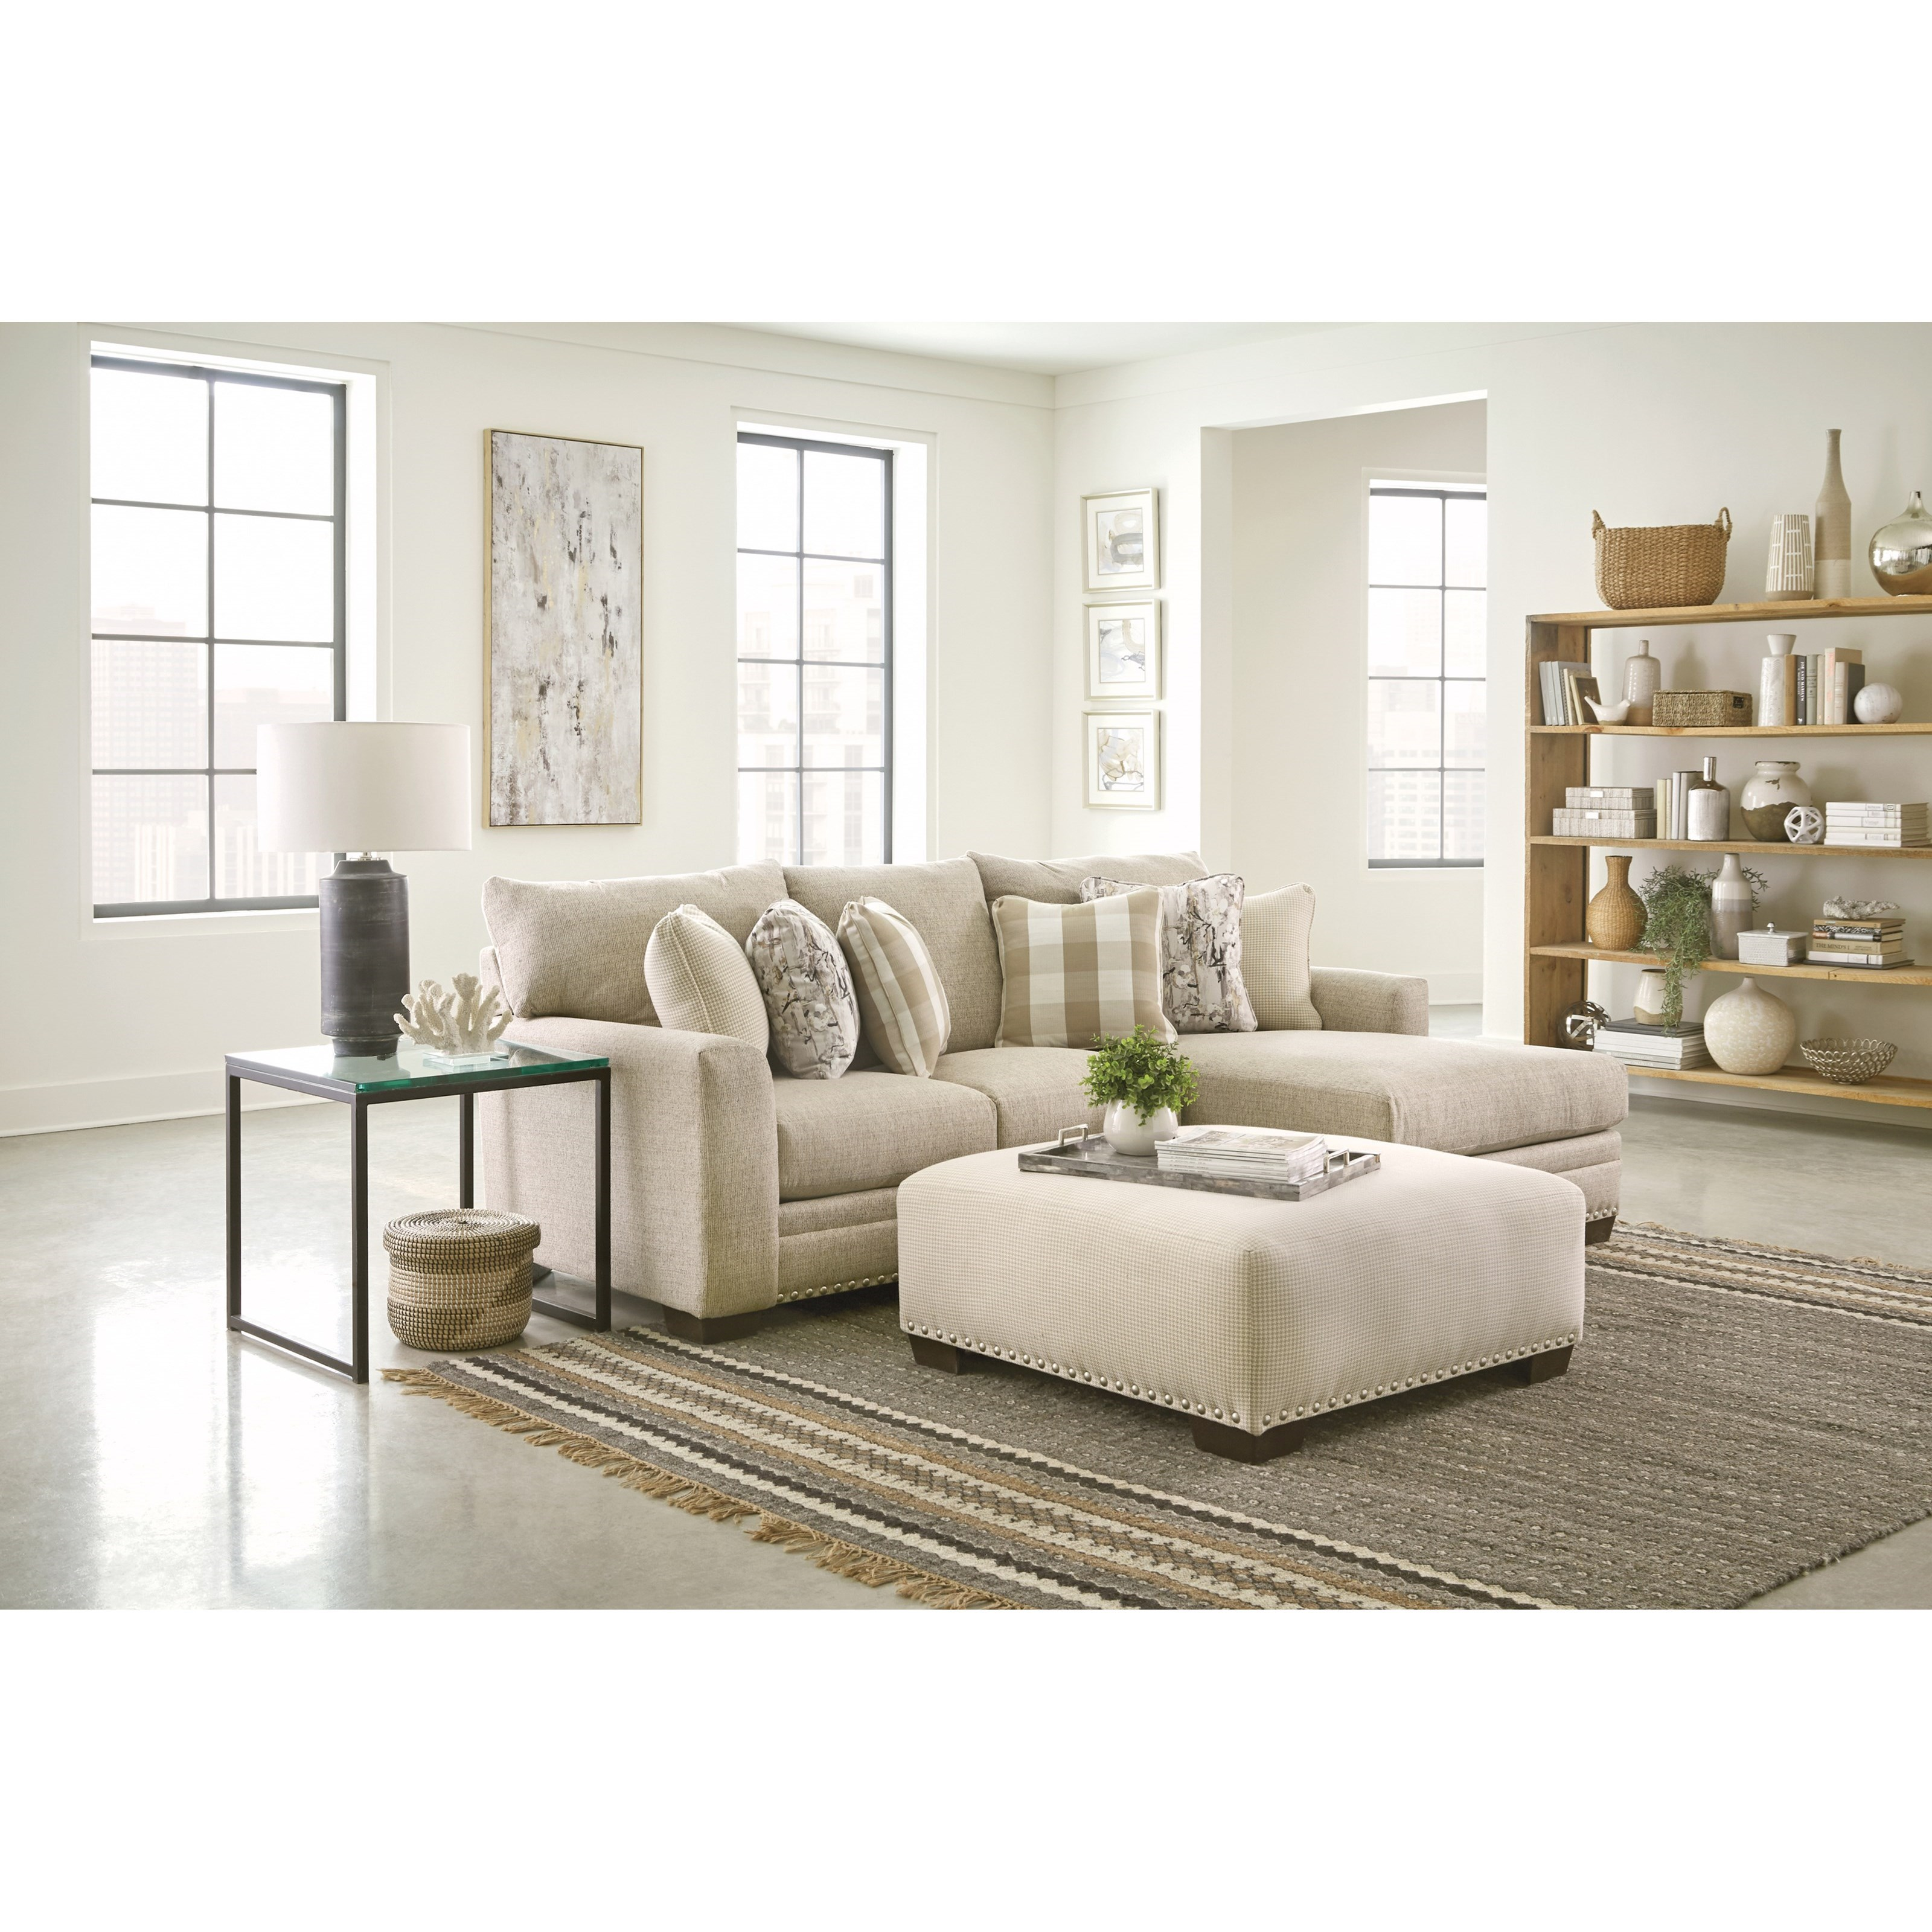 Salem Chaise Sofa by Jackson Furniture at Northeast Factory Direct